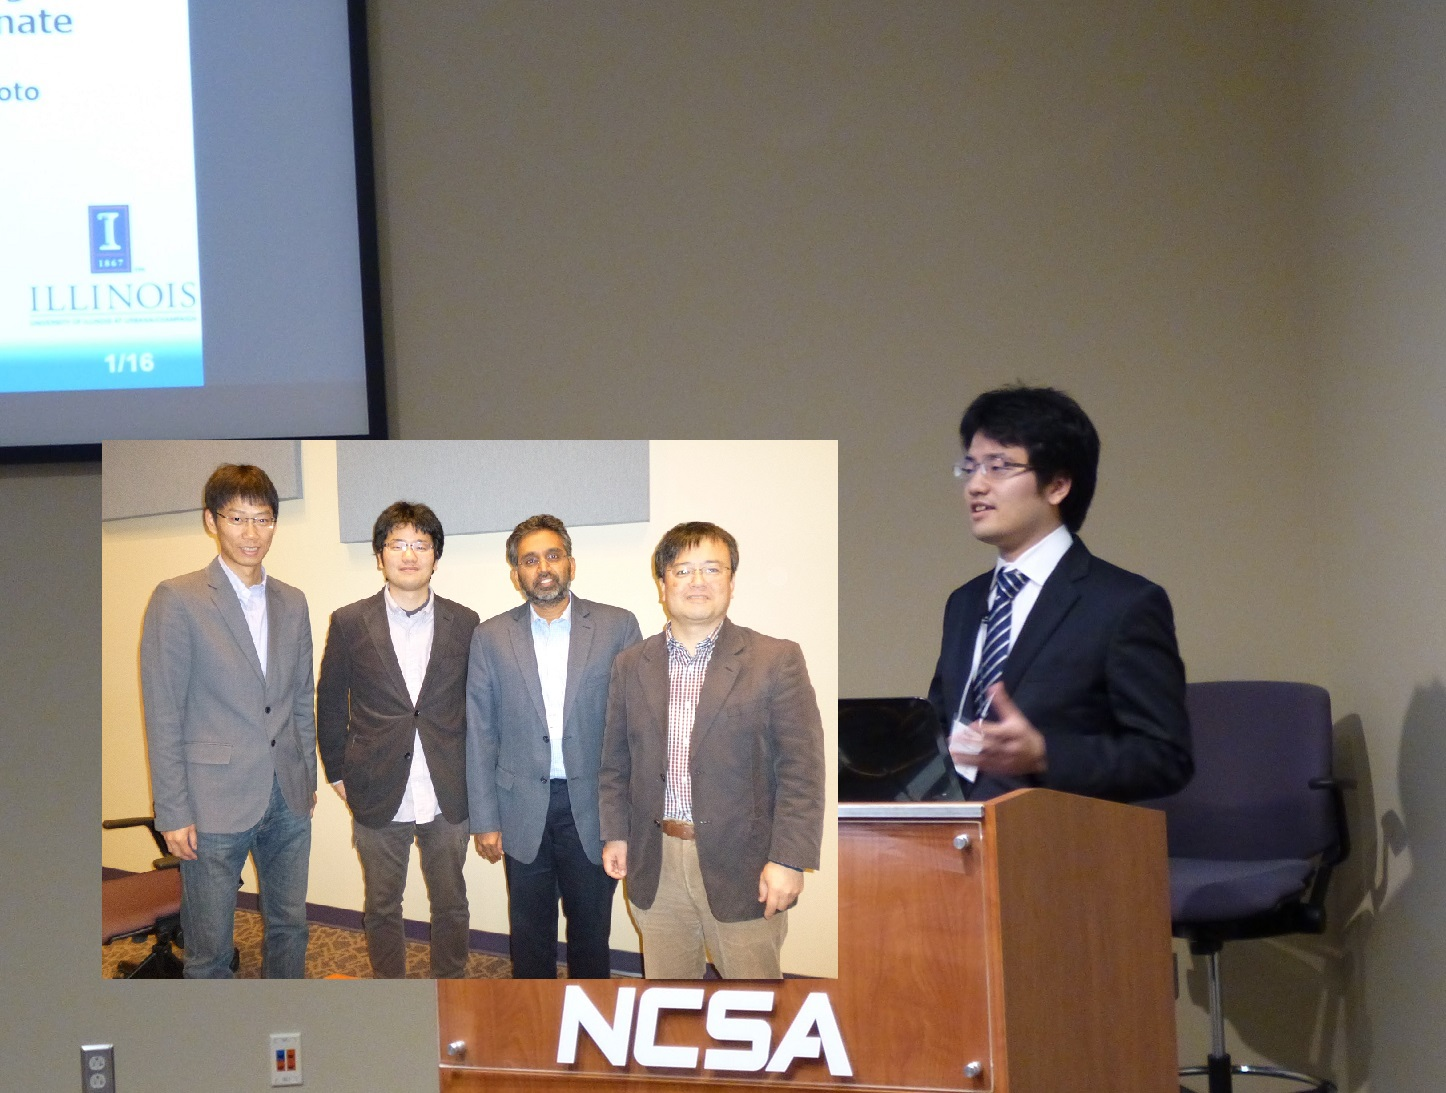 Fujisaki(D1) took part in the PIRE program between Kyushu University and University of Illinois as exchanging student.